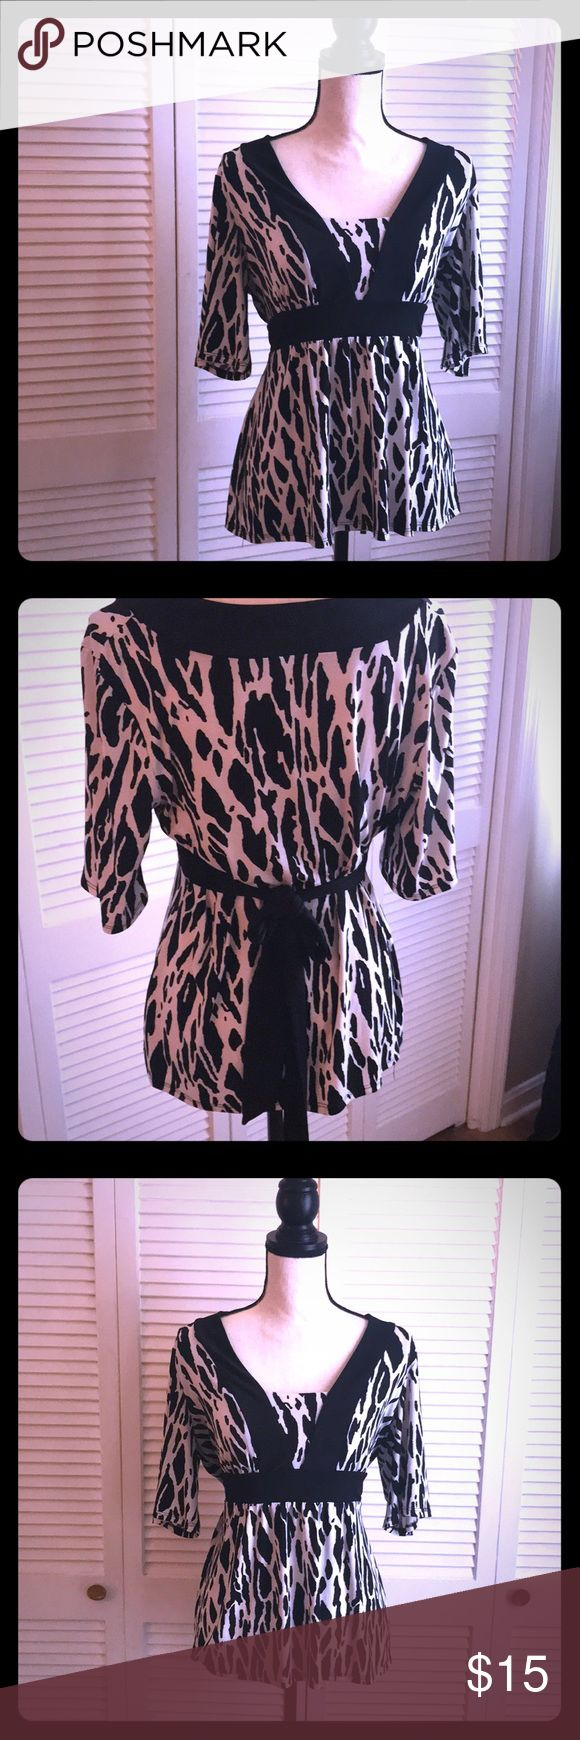 BLACK AND WHITE TOP W TIE BACK SIZE L Size L  Adorable and Flattering Top.  Can be worn for business casual or for a night out. Pairs well w a skirt, dark denim, dress pants. AB Studio Tops